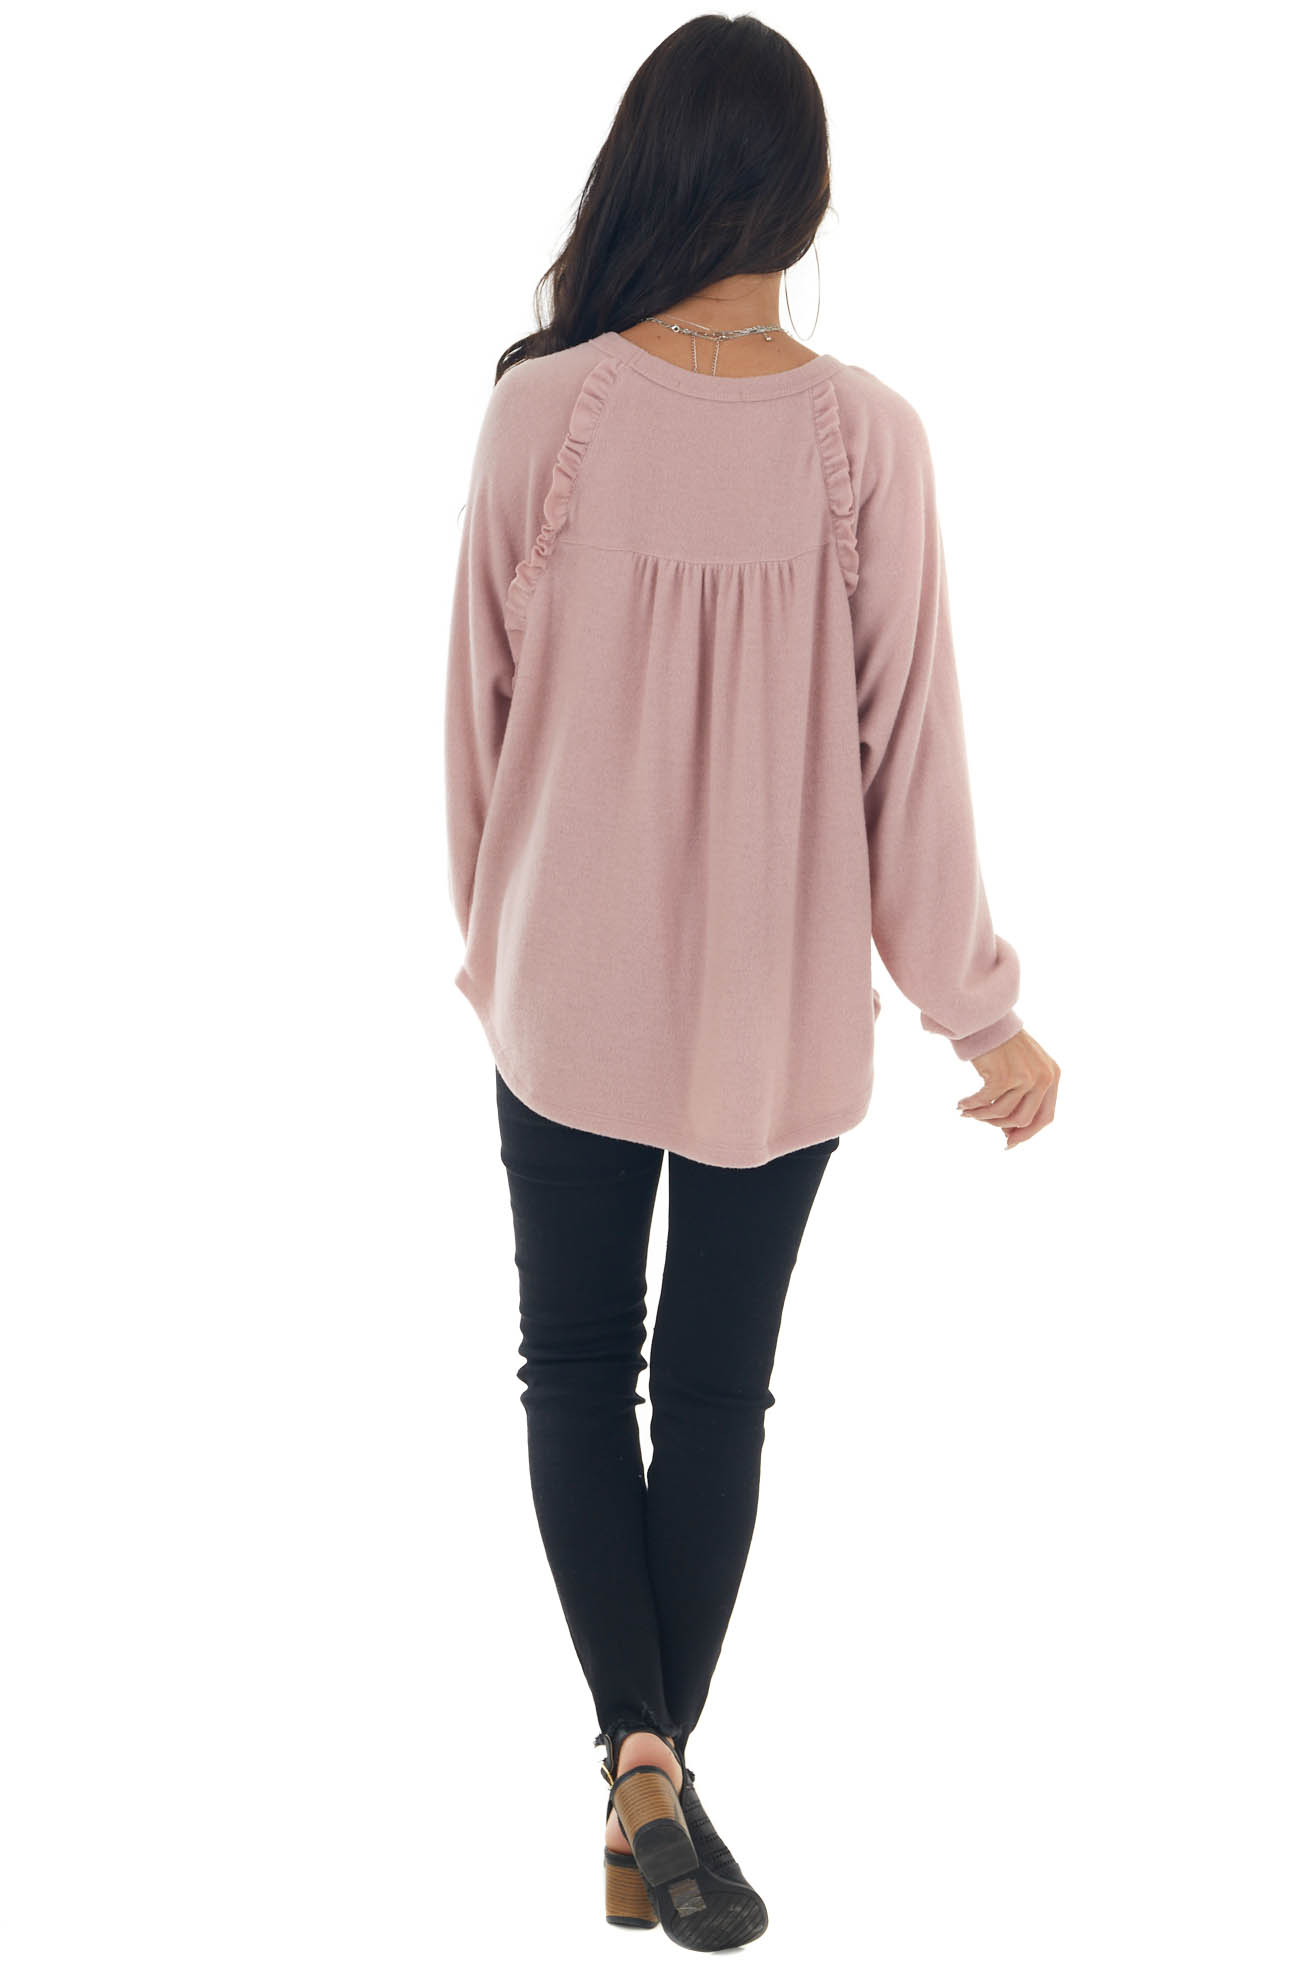 Cherry Blossom Long Sleeve Brushed Knit Top